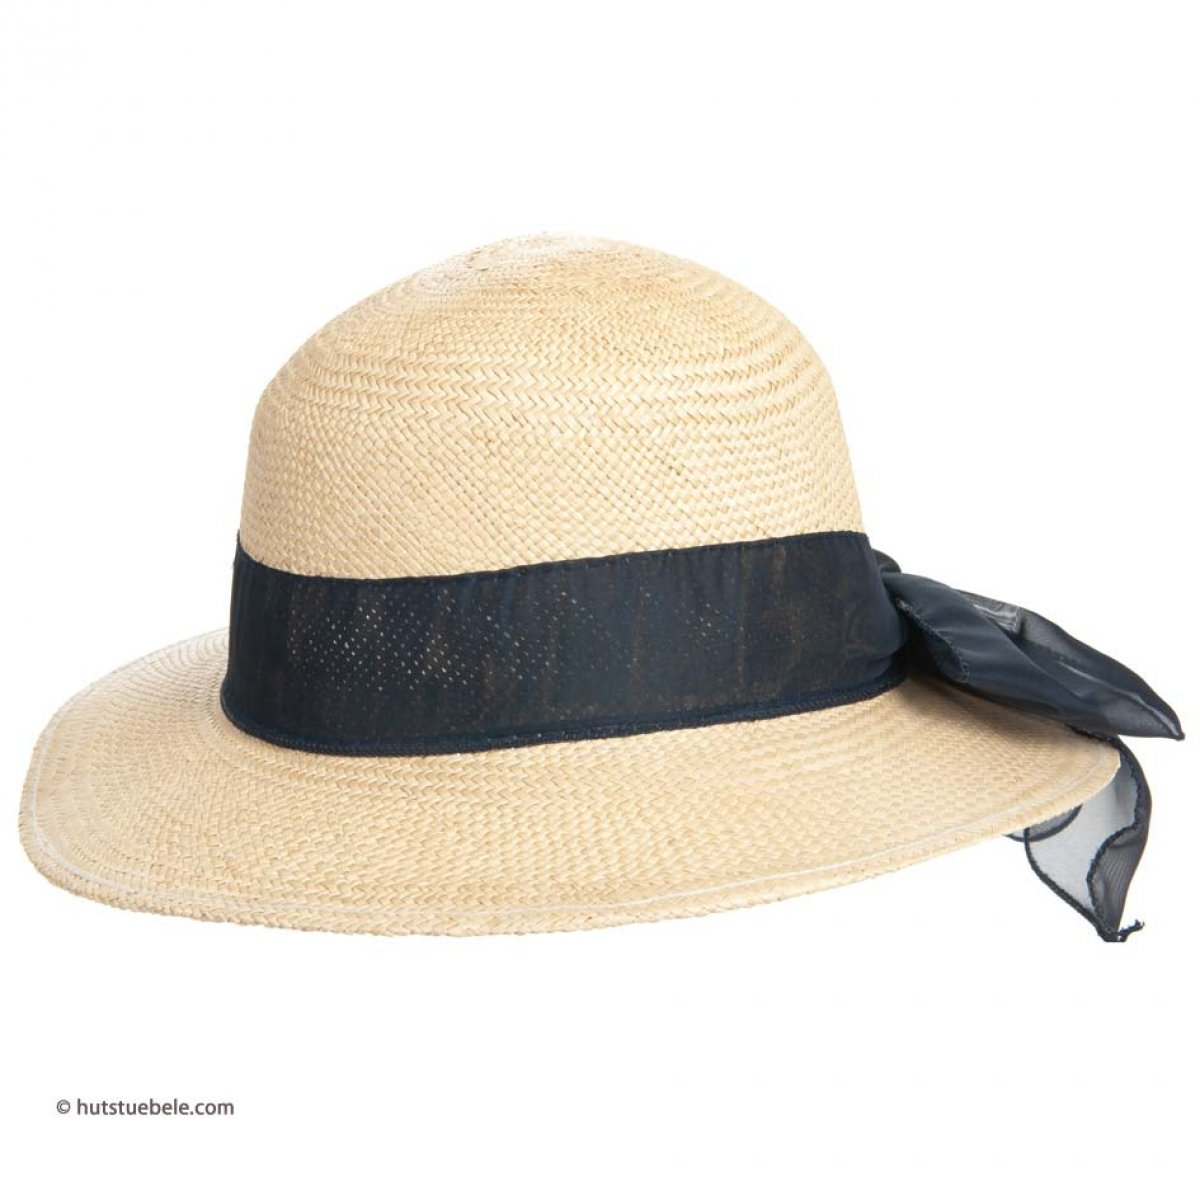 8746e14d6b7e6 straw hat for woman by Hutter